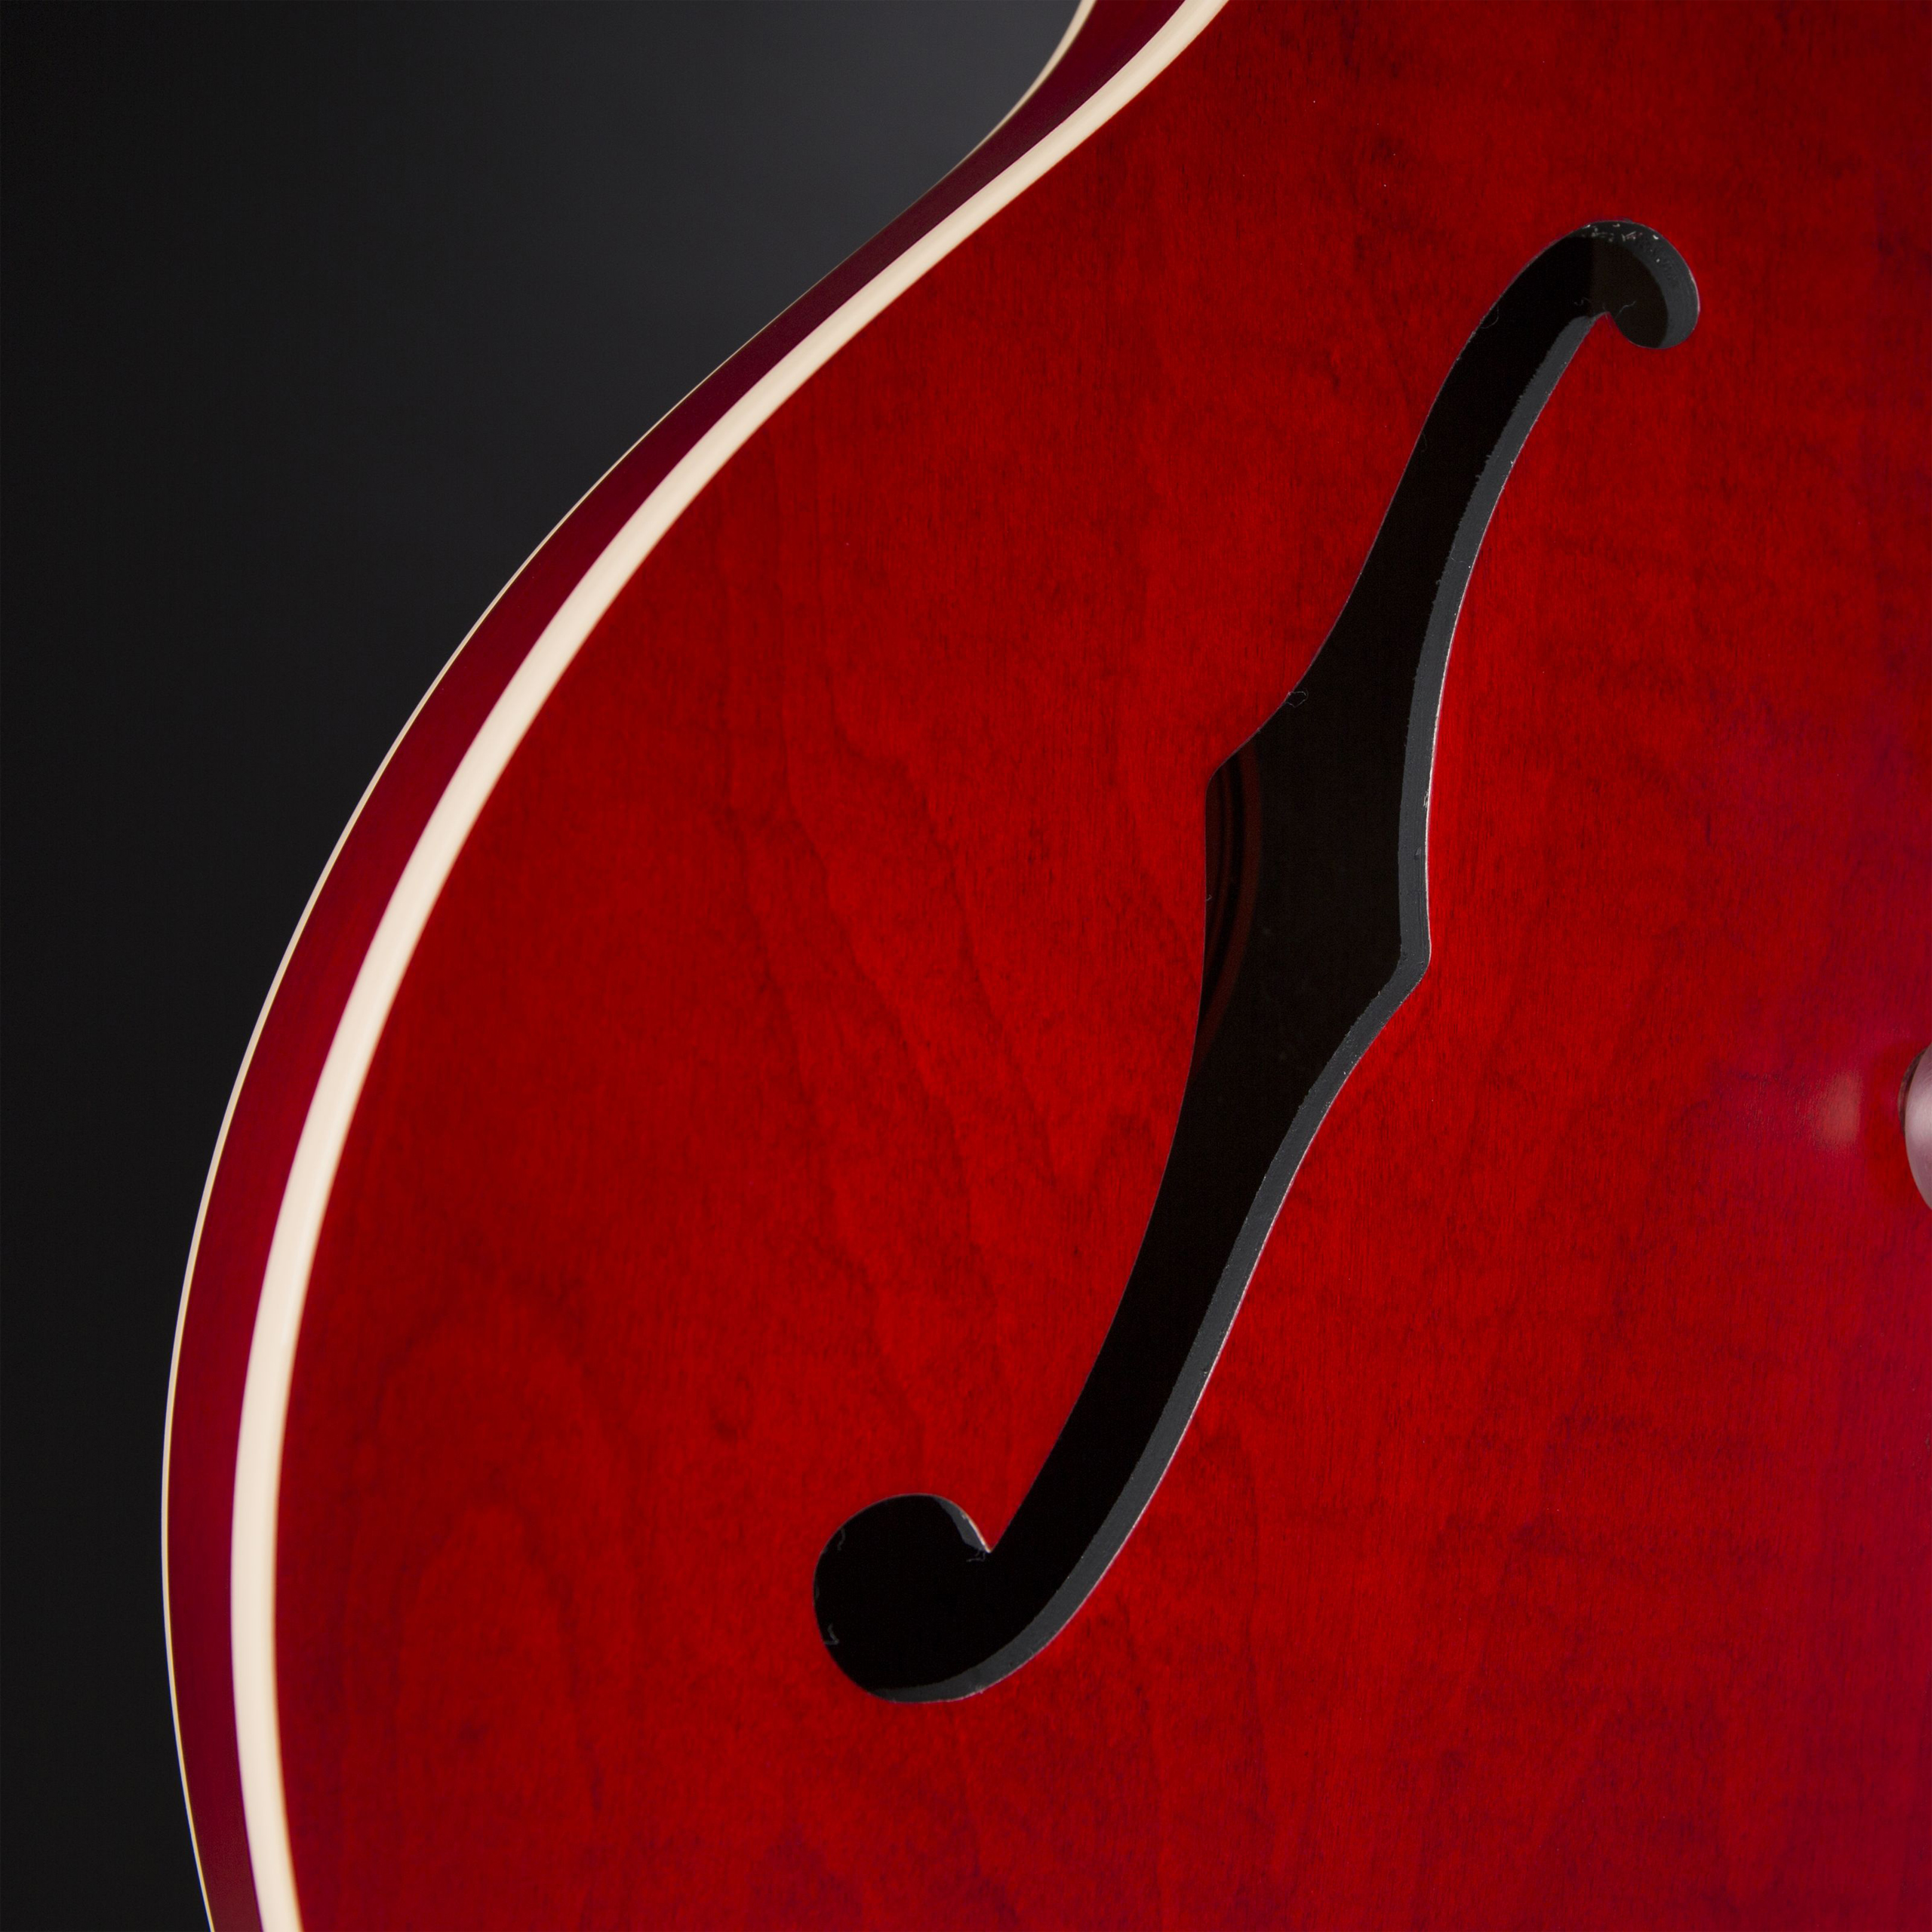 Gibson ES-335 Satin Faded Cherry #11666742 Detail